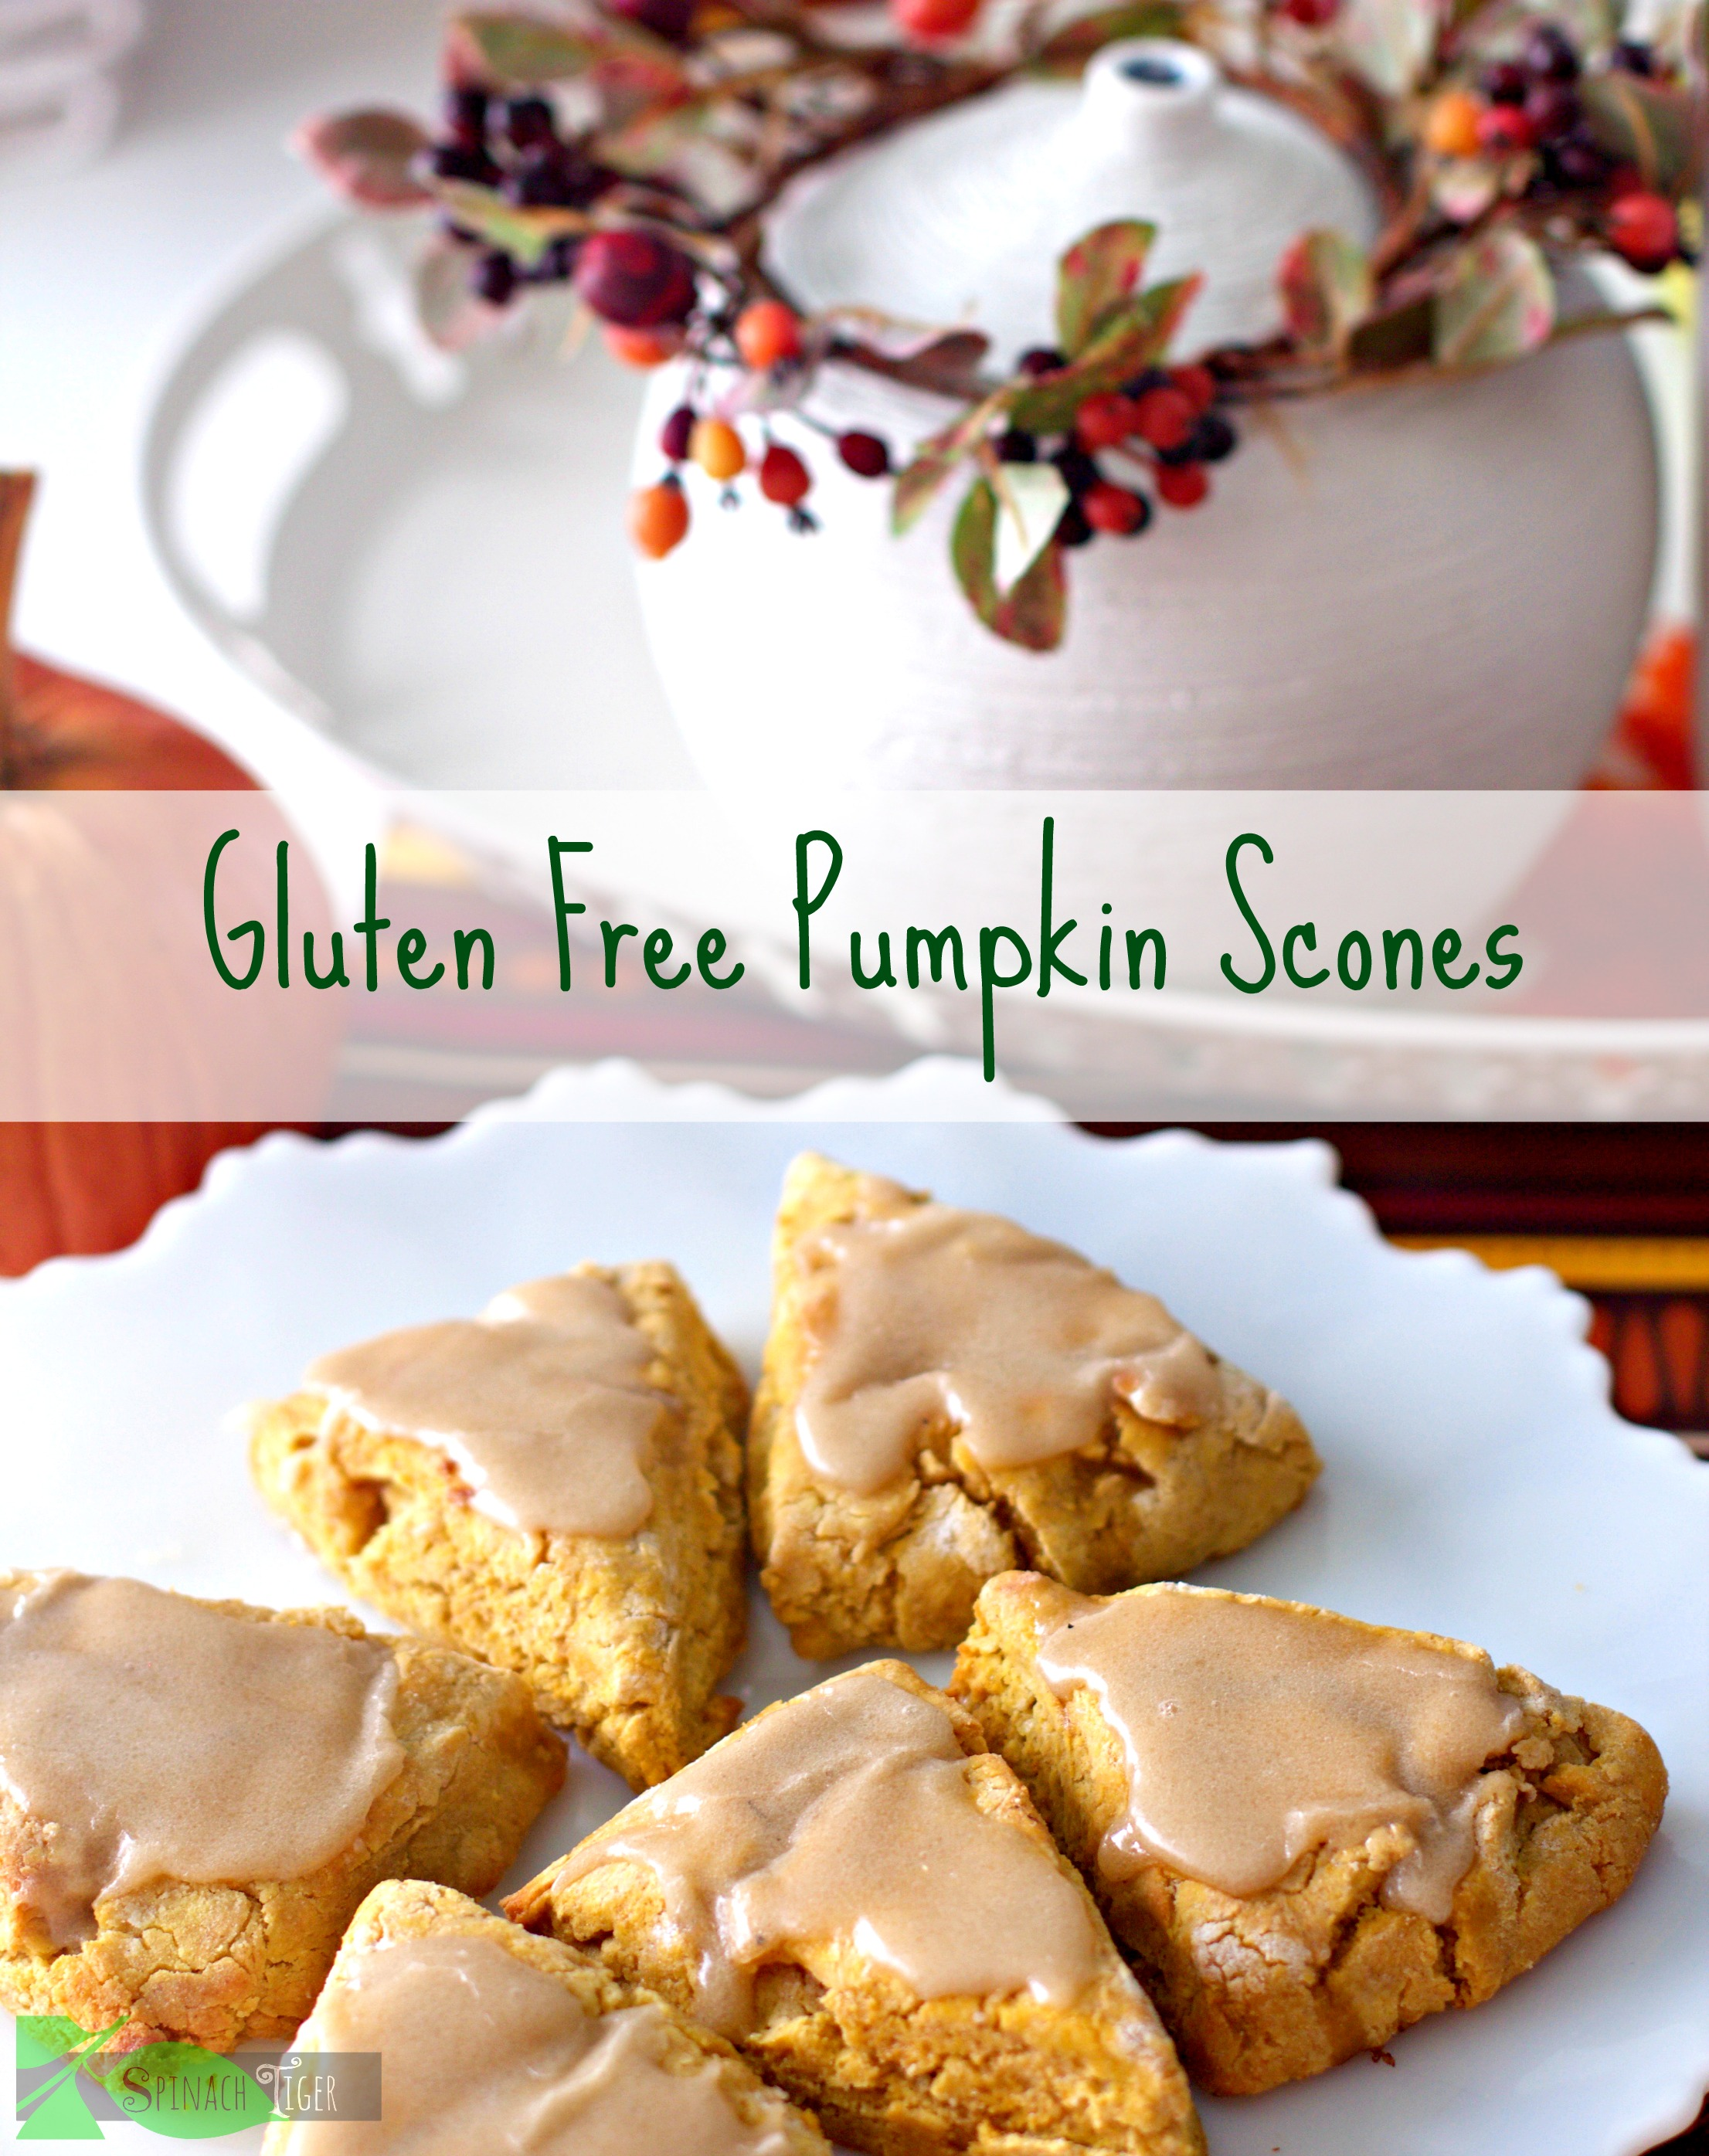 Best Pumpkin Dessert Recipes, Gluten Free Pumpkin Scones from Spinach Tiger